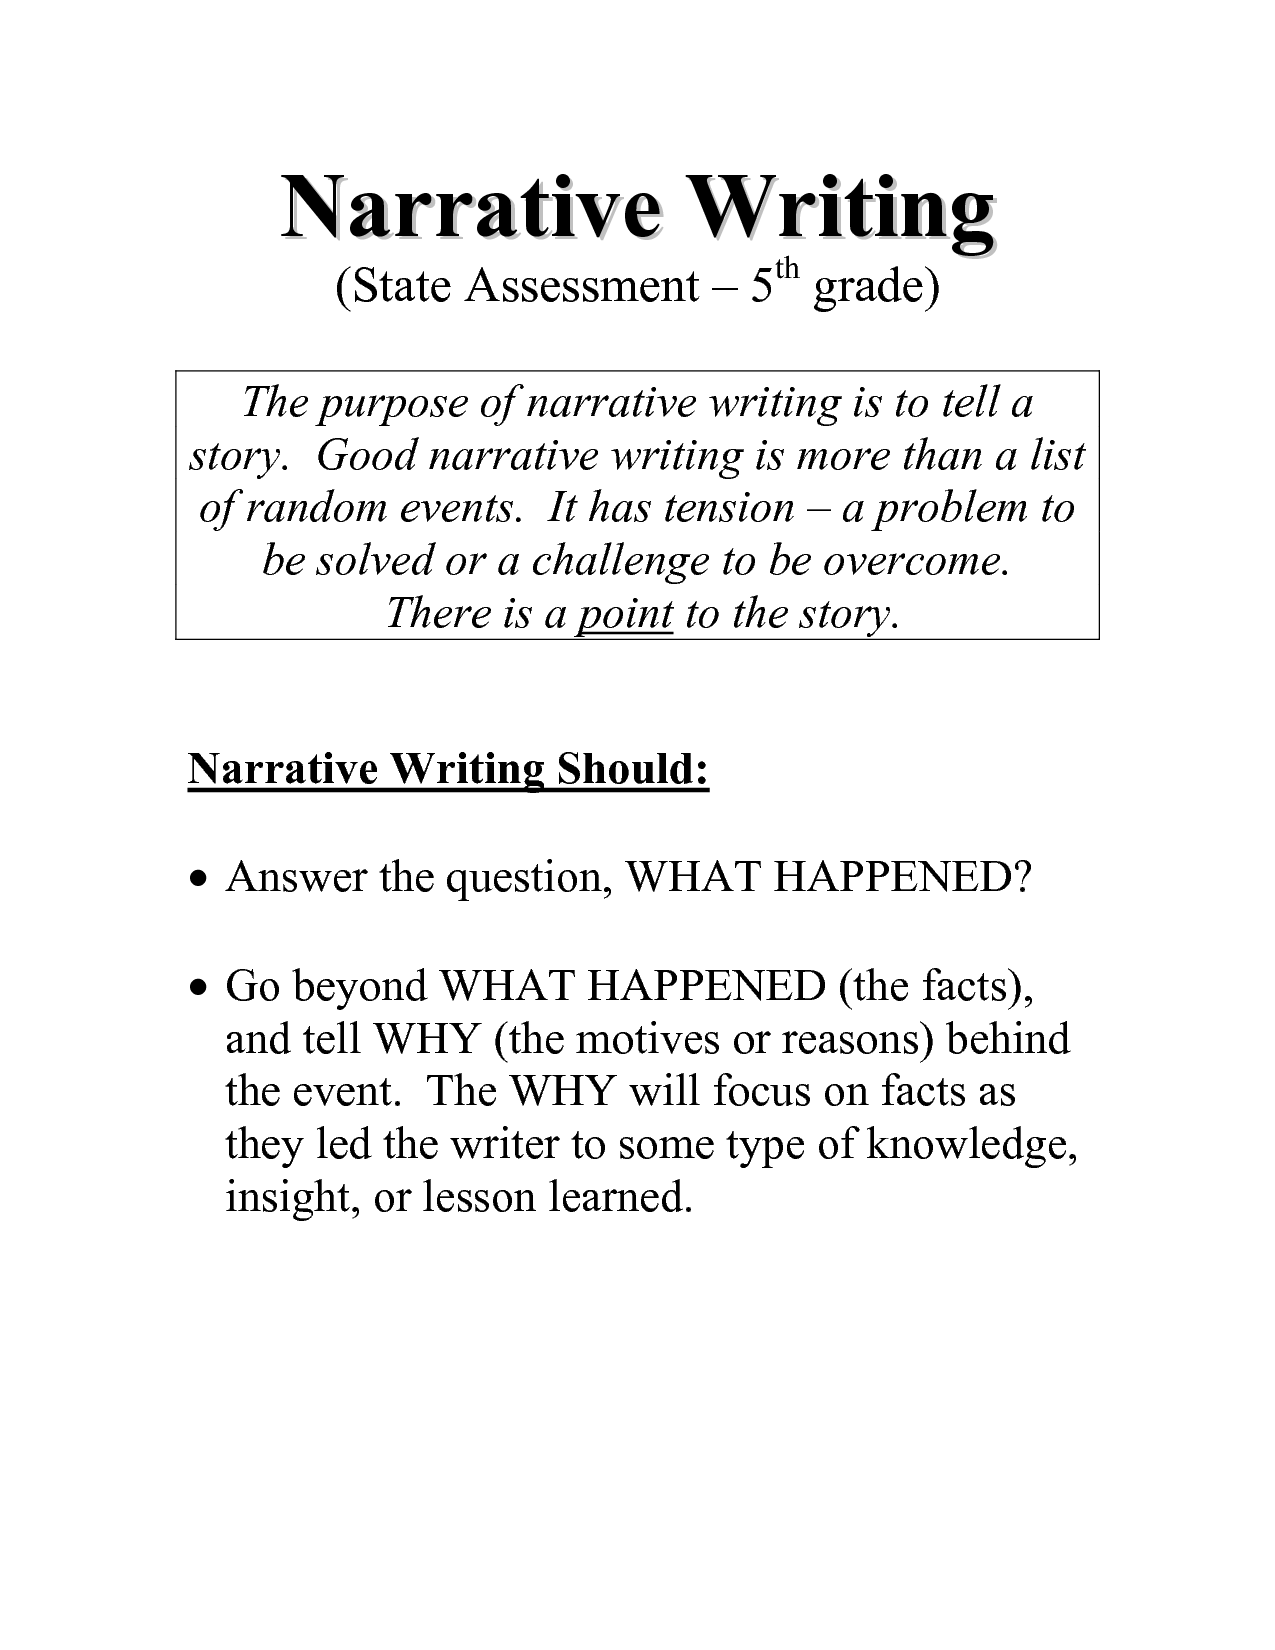 012 Essay Writing Prompts Example Formidable Narrative For Middle School 5 Paragraph 5th Grade Full